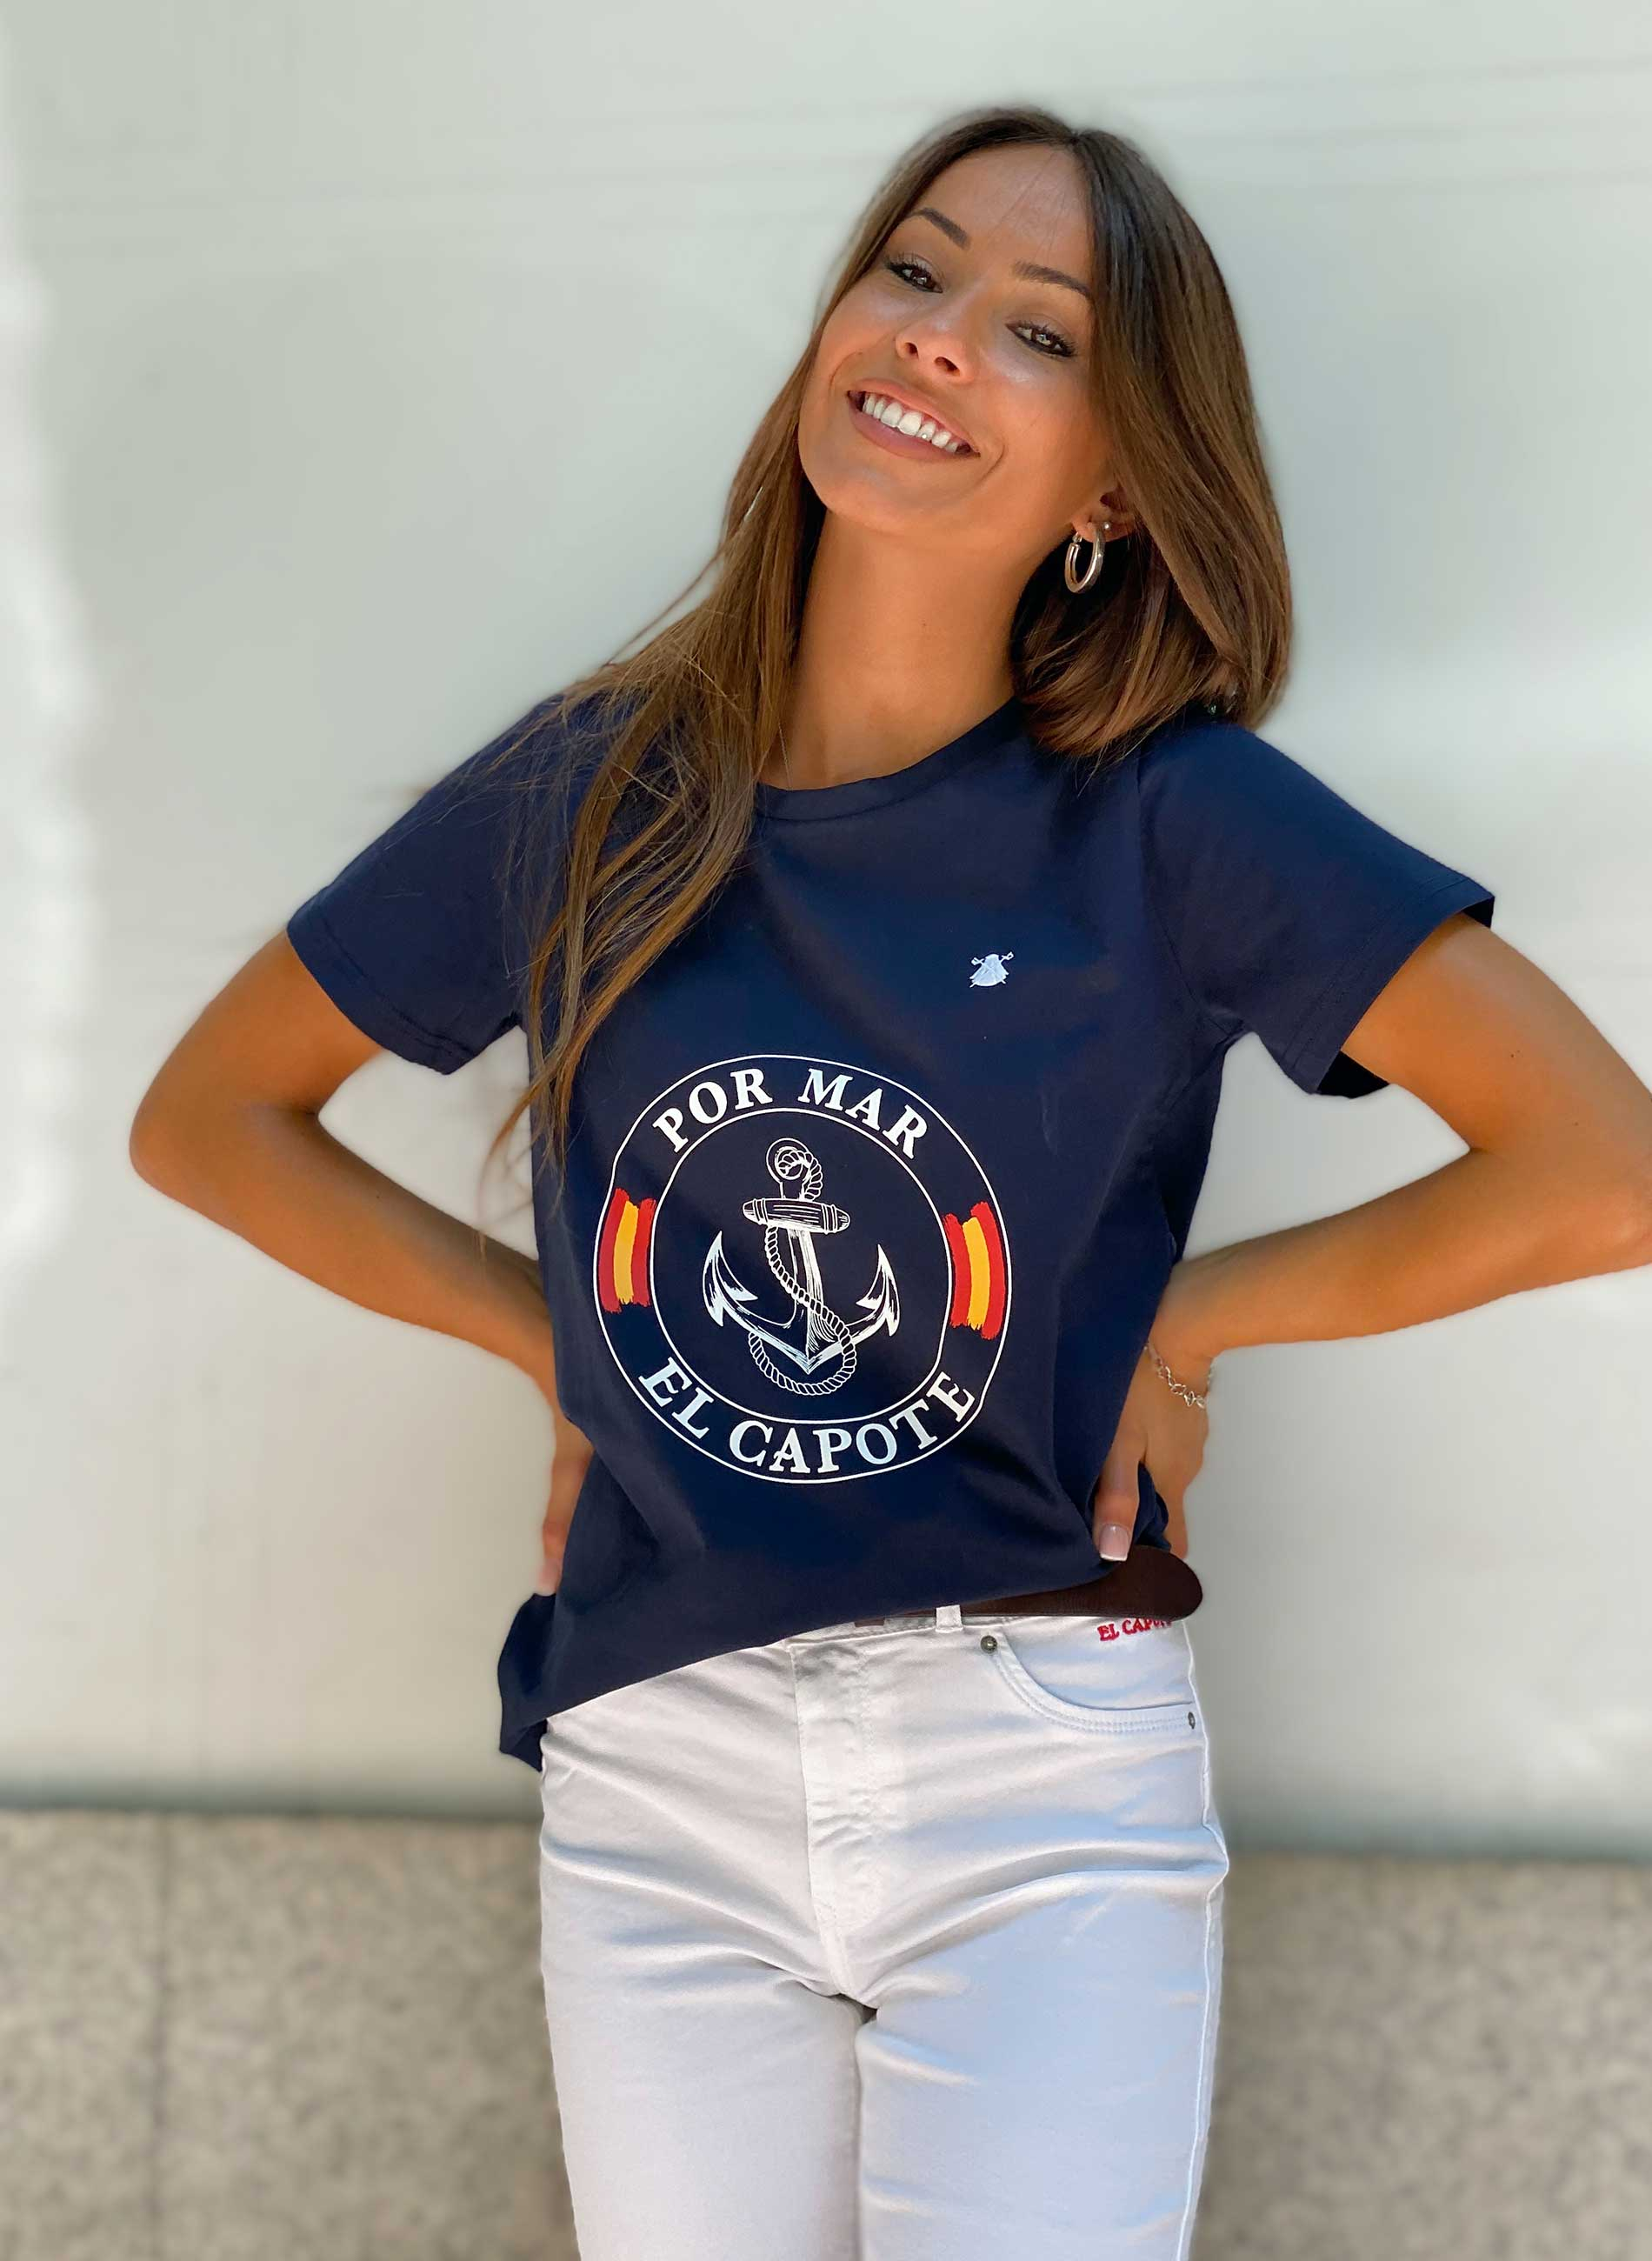 Navy Blue Woman T-Shirt Tribute to the Spanish Navy